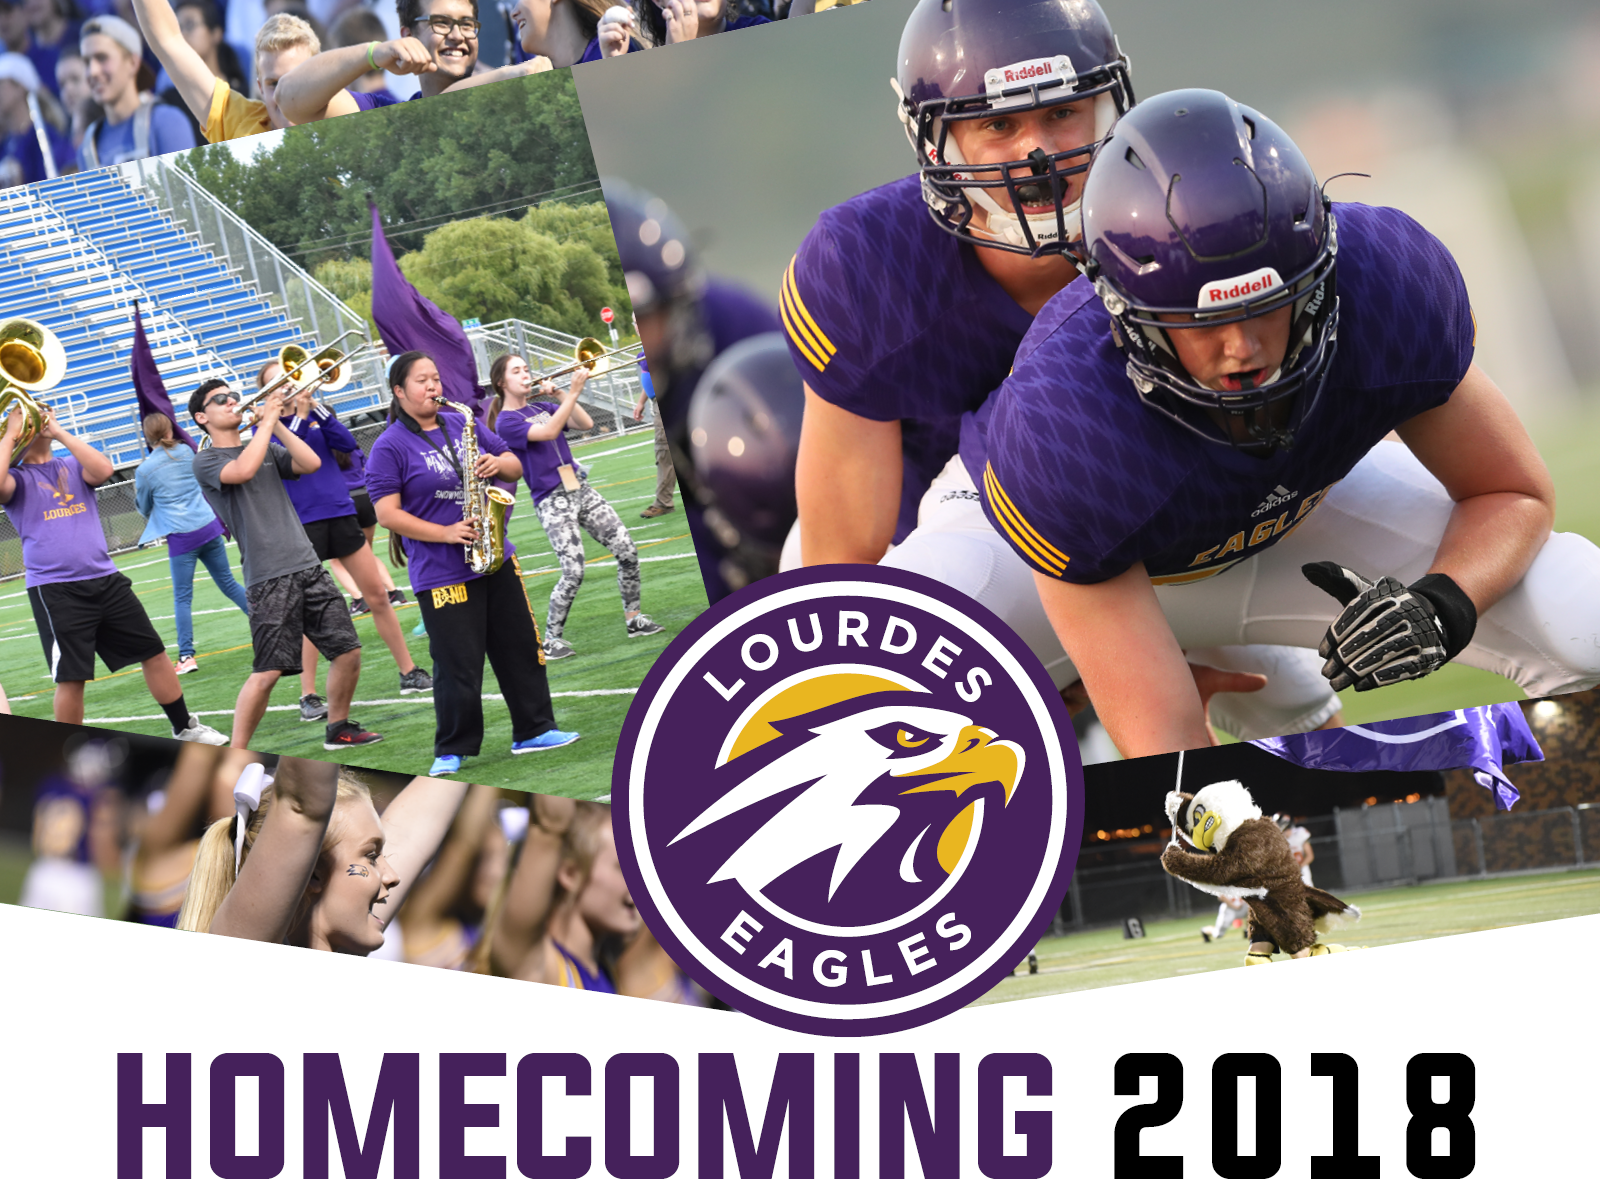 Join us for Homecoming 2018!